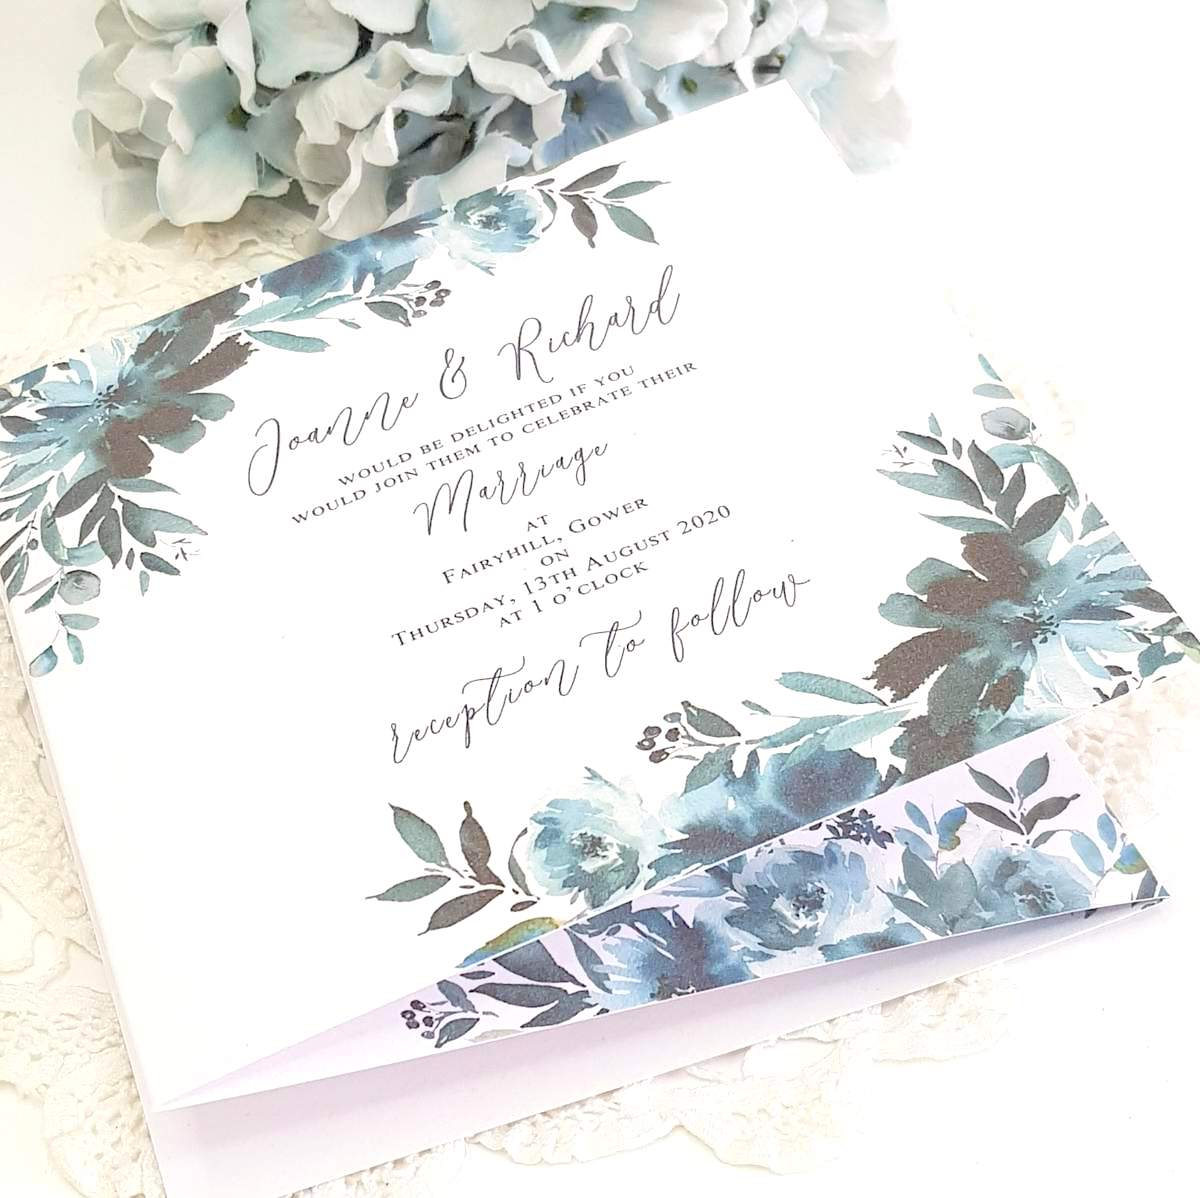 A concertina style wedding invitation with a bold blue floral design, printed onto white recycled card